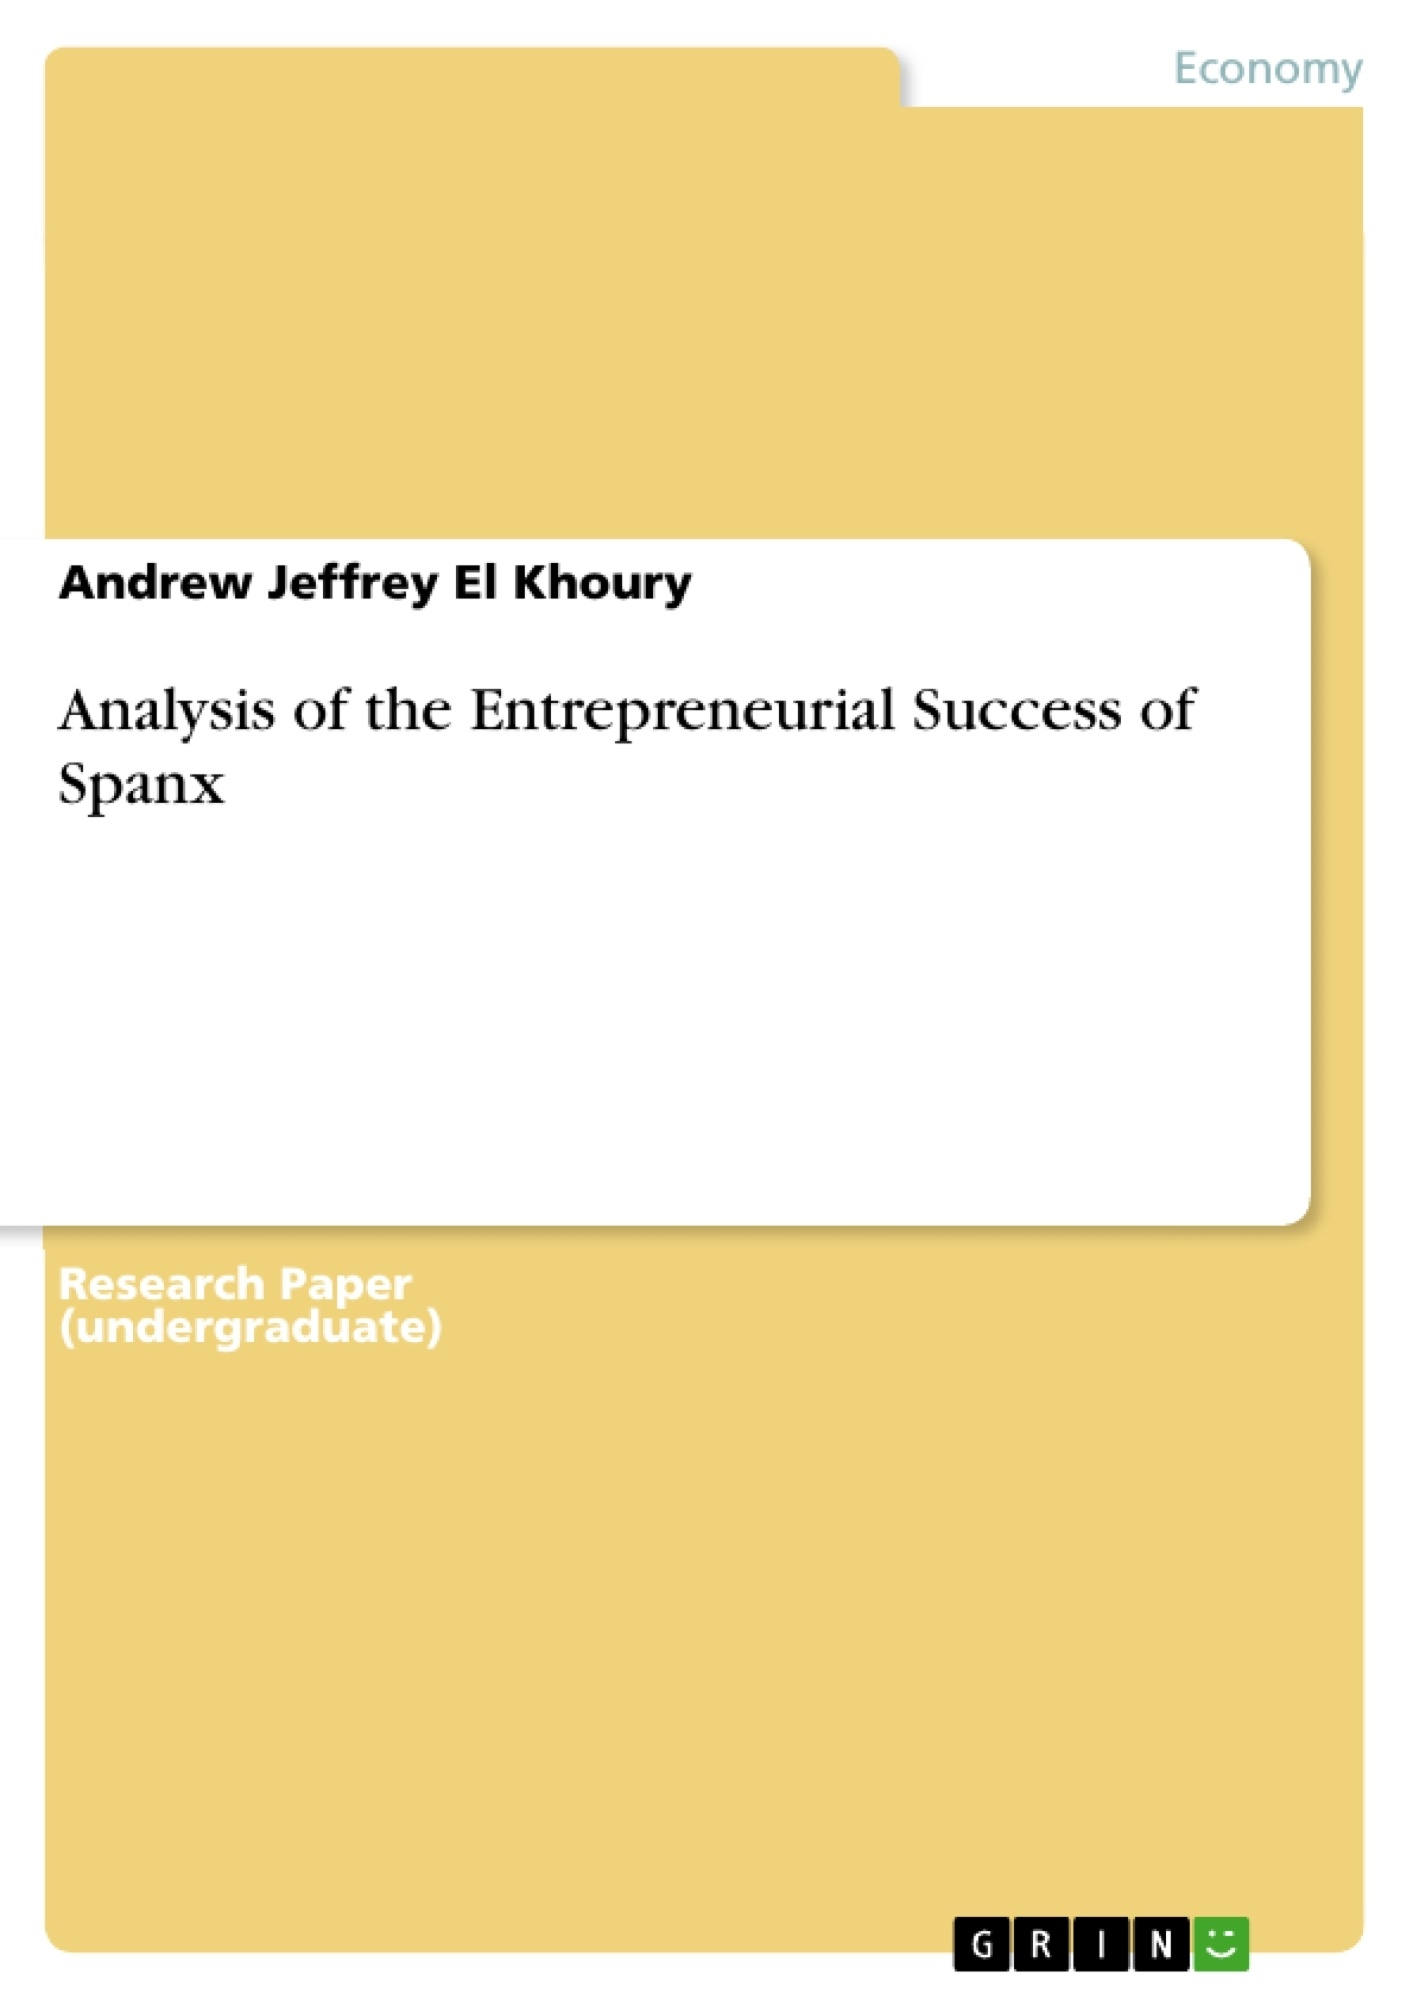 Title: Analysis of the Entrepreneurial Success of Spanx